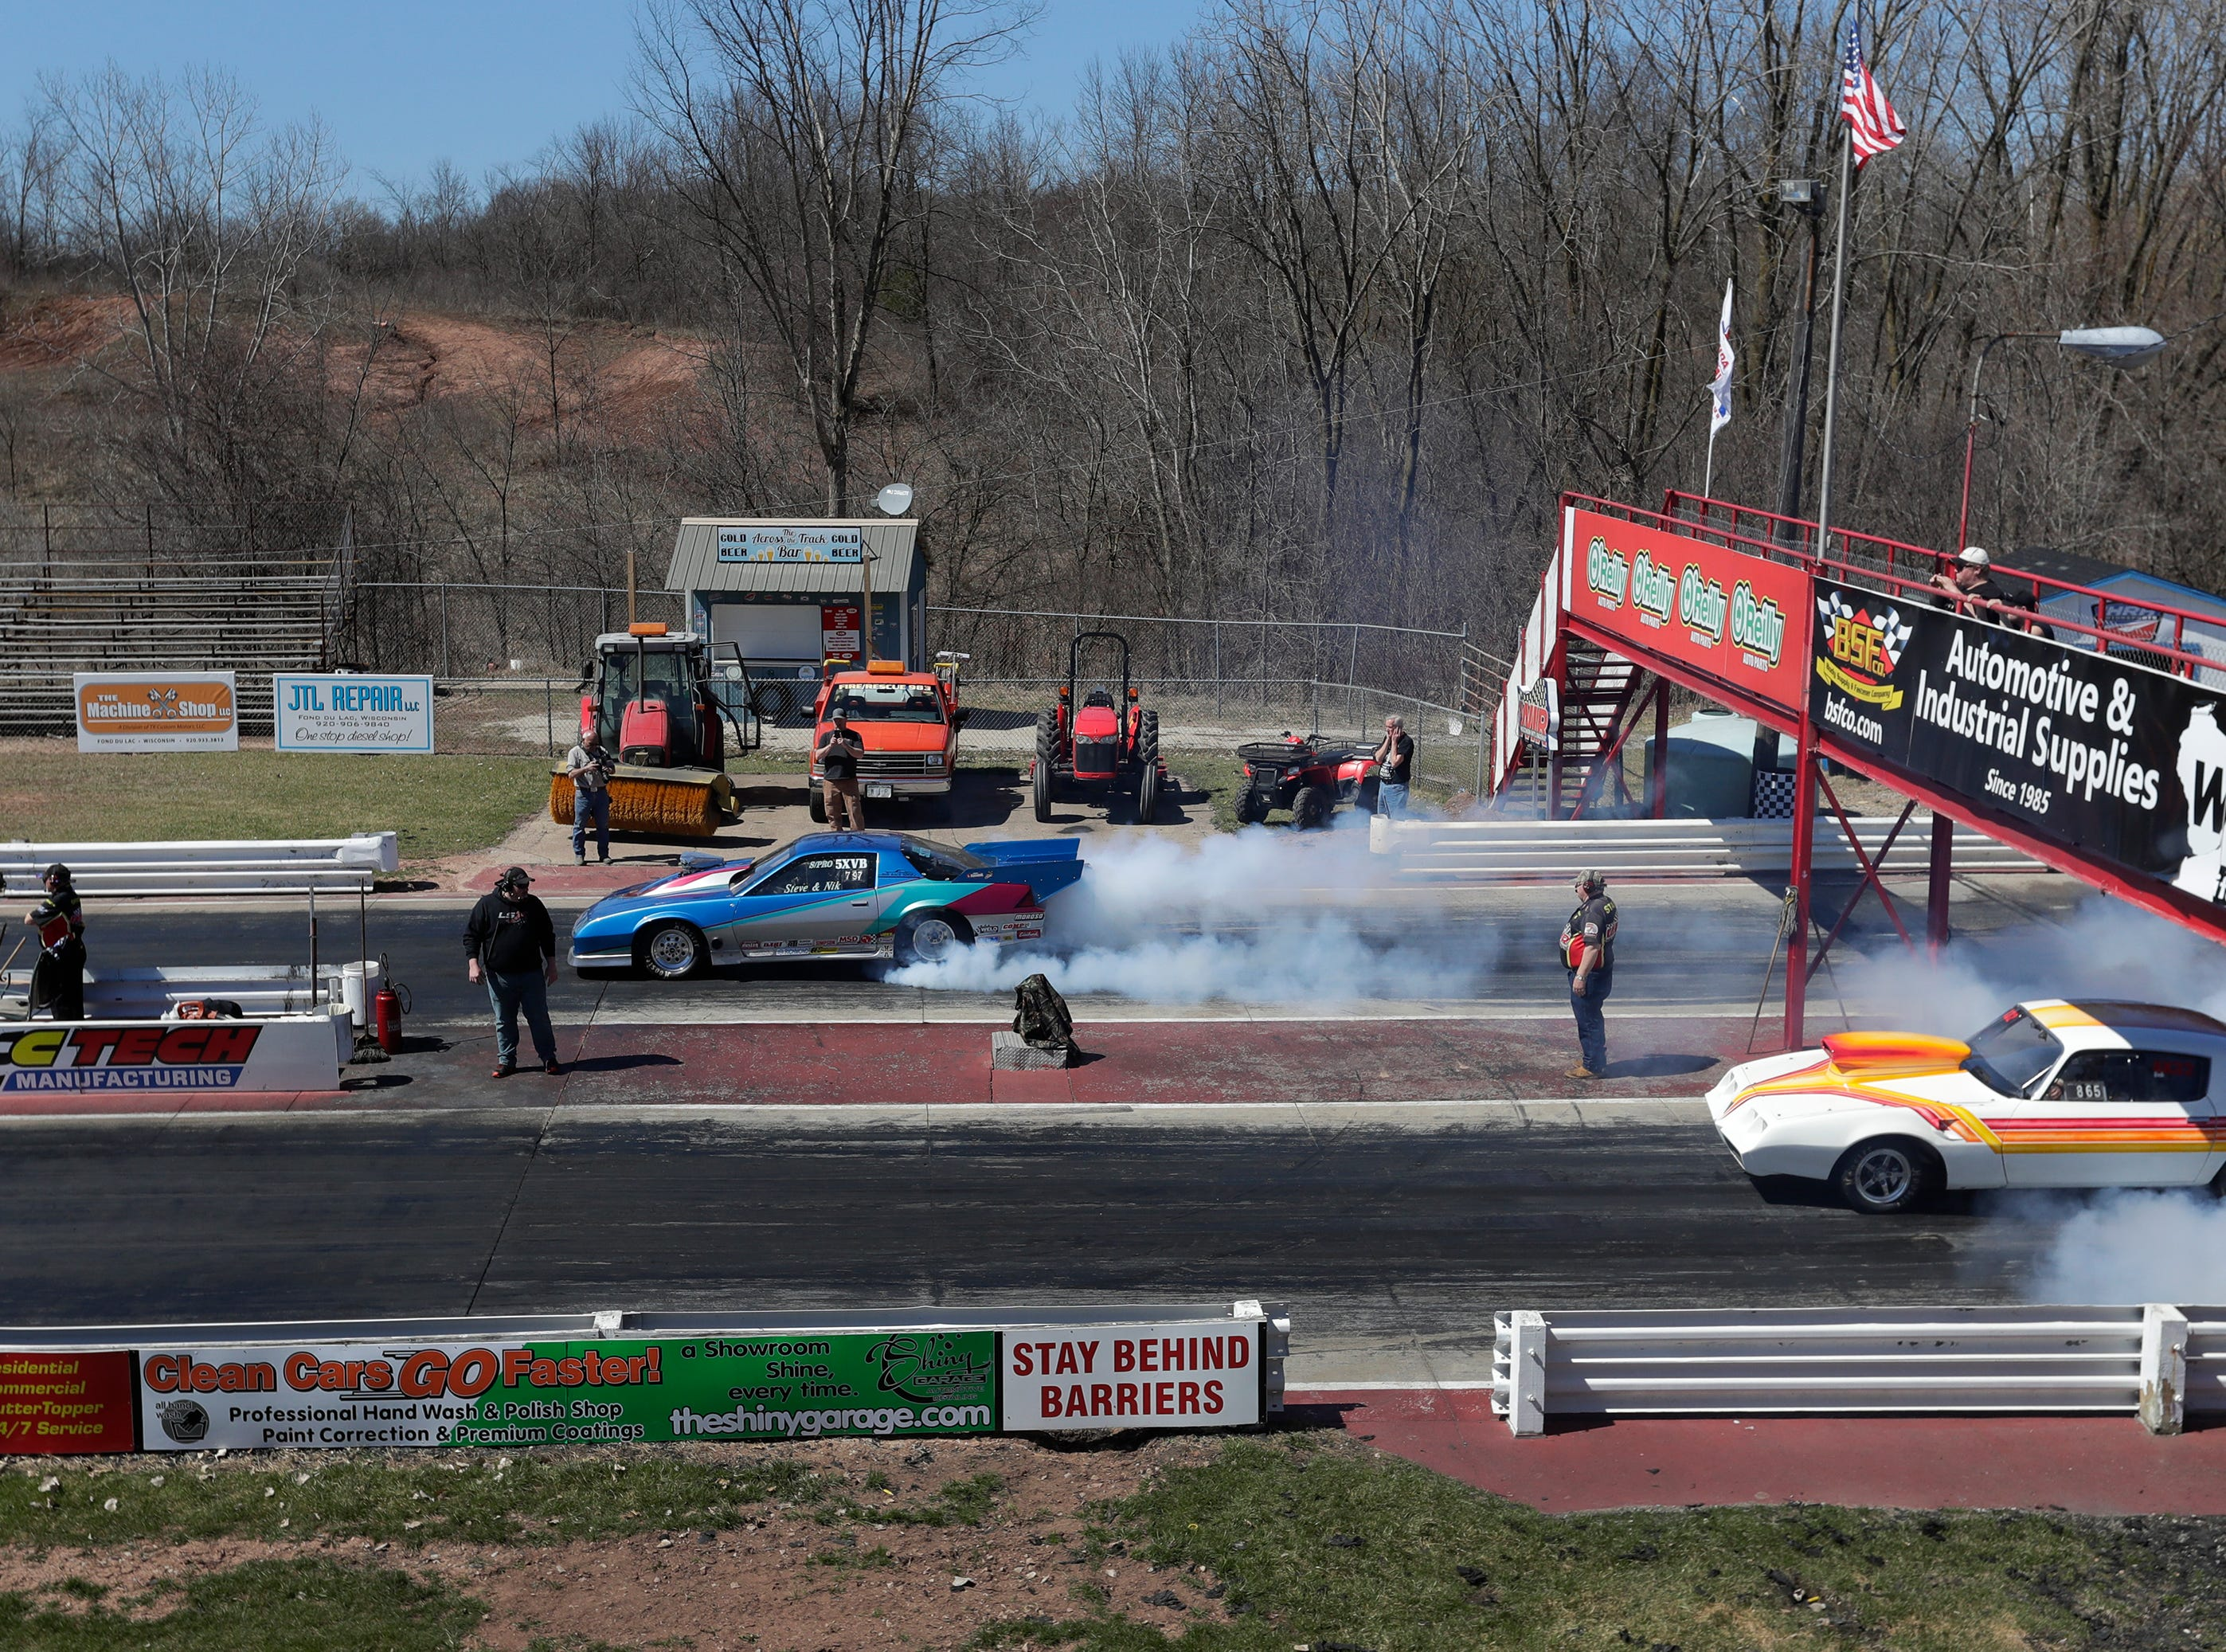 Cars do burn outs before their test run during the Wisconsin International Raceway Strip Test & Tune event Saturday, April 20, 2019, in Kaukauna, Wis. Drivers spent the day getting safety inspections, tune ups and test runs on the track for the upcoming season.